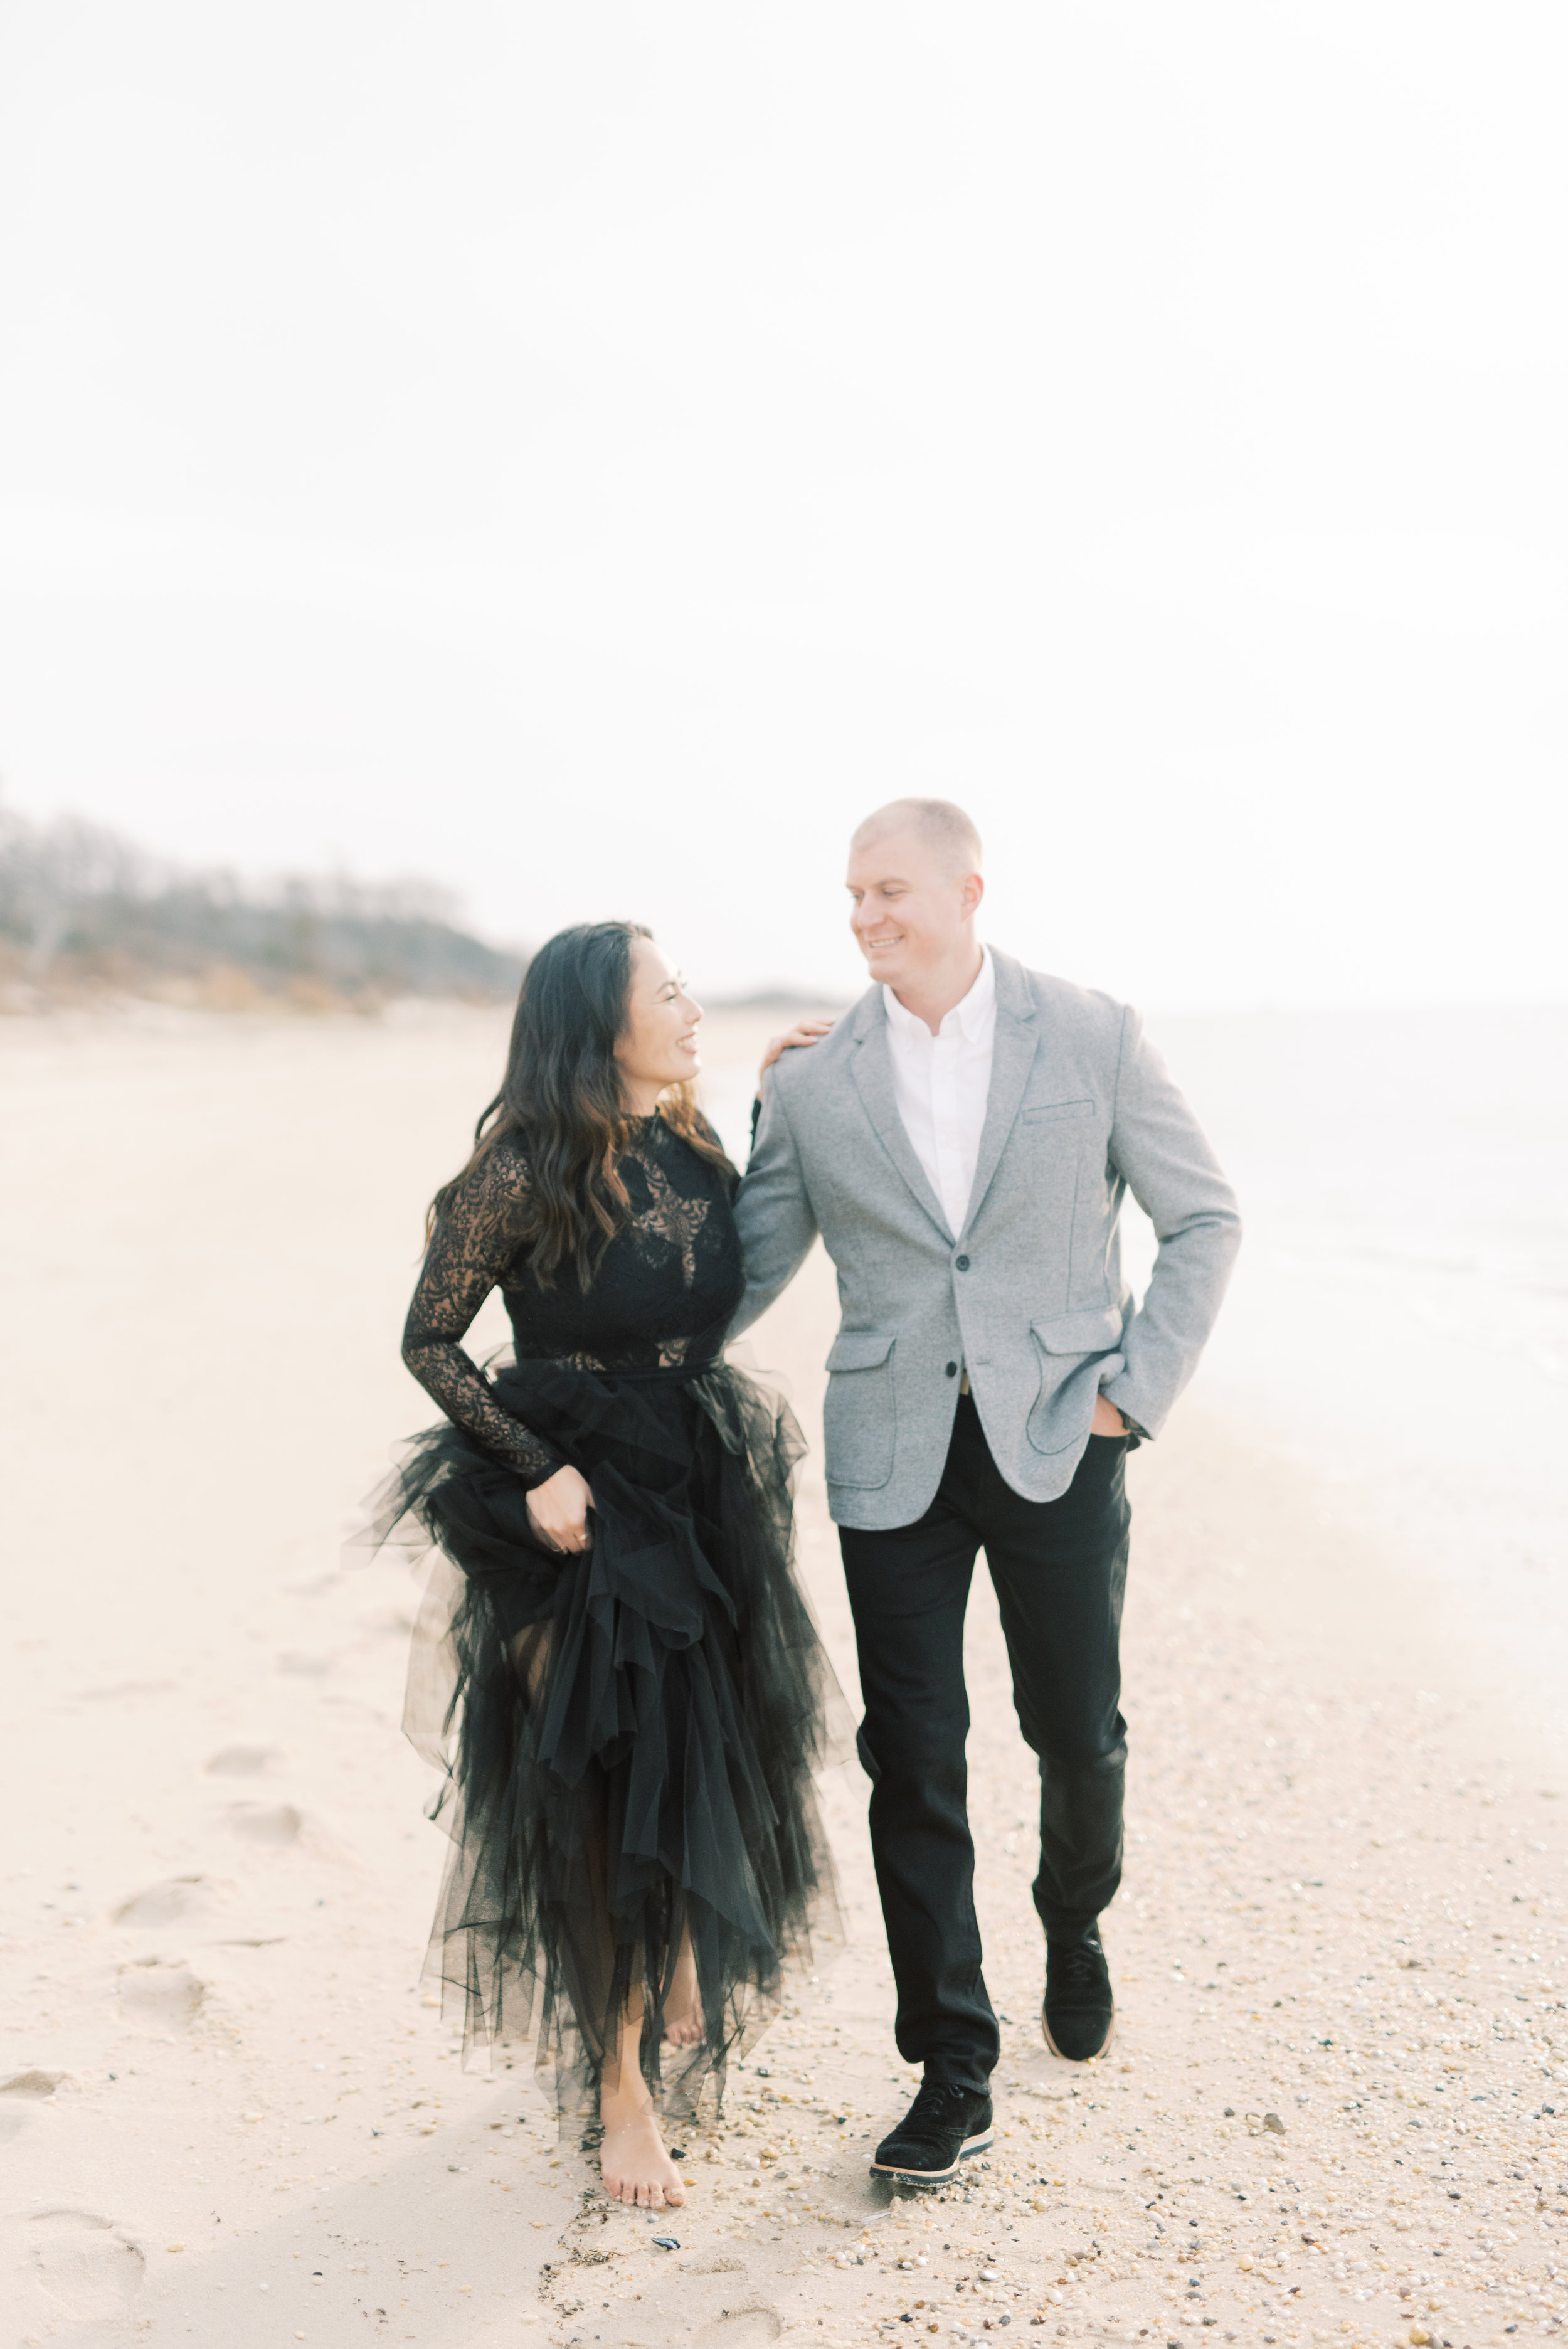 haley-richter-photography-cape-may-engagement-session-037.jpg